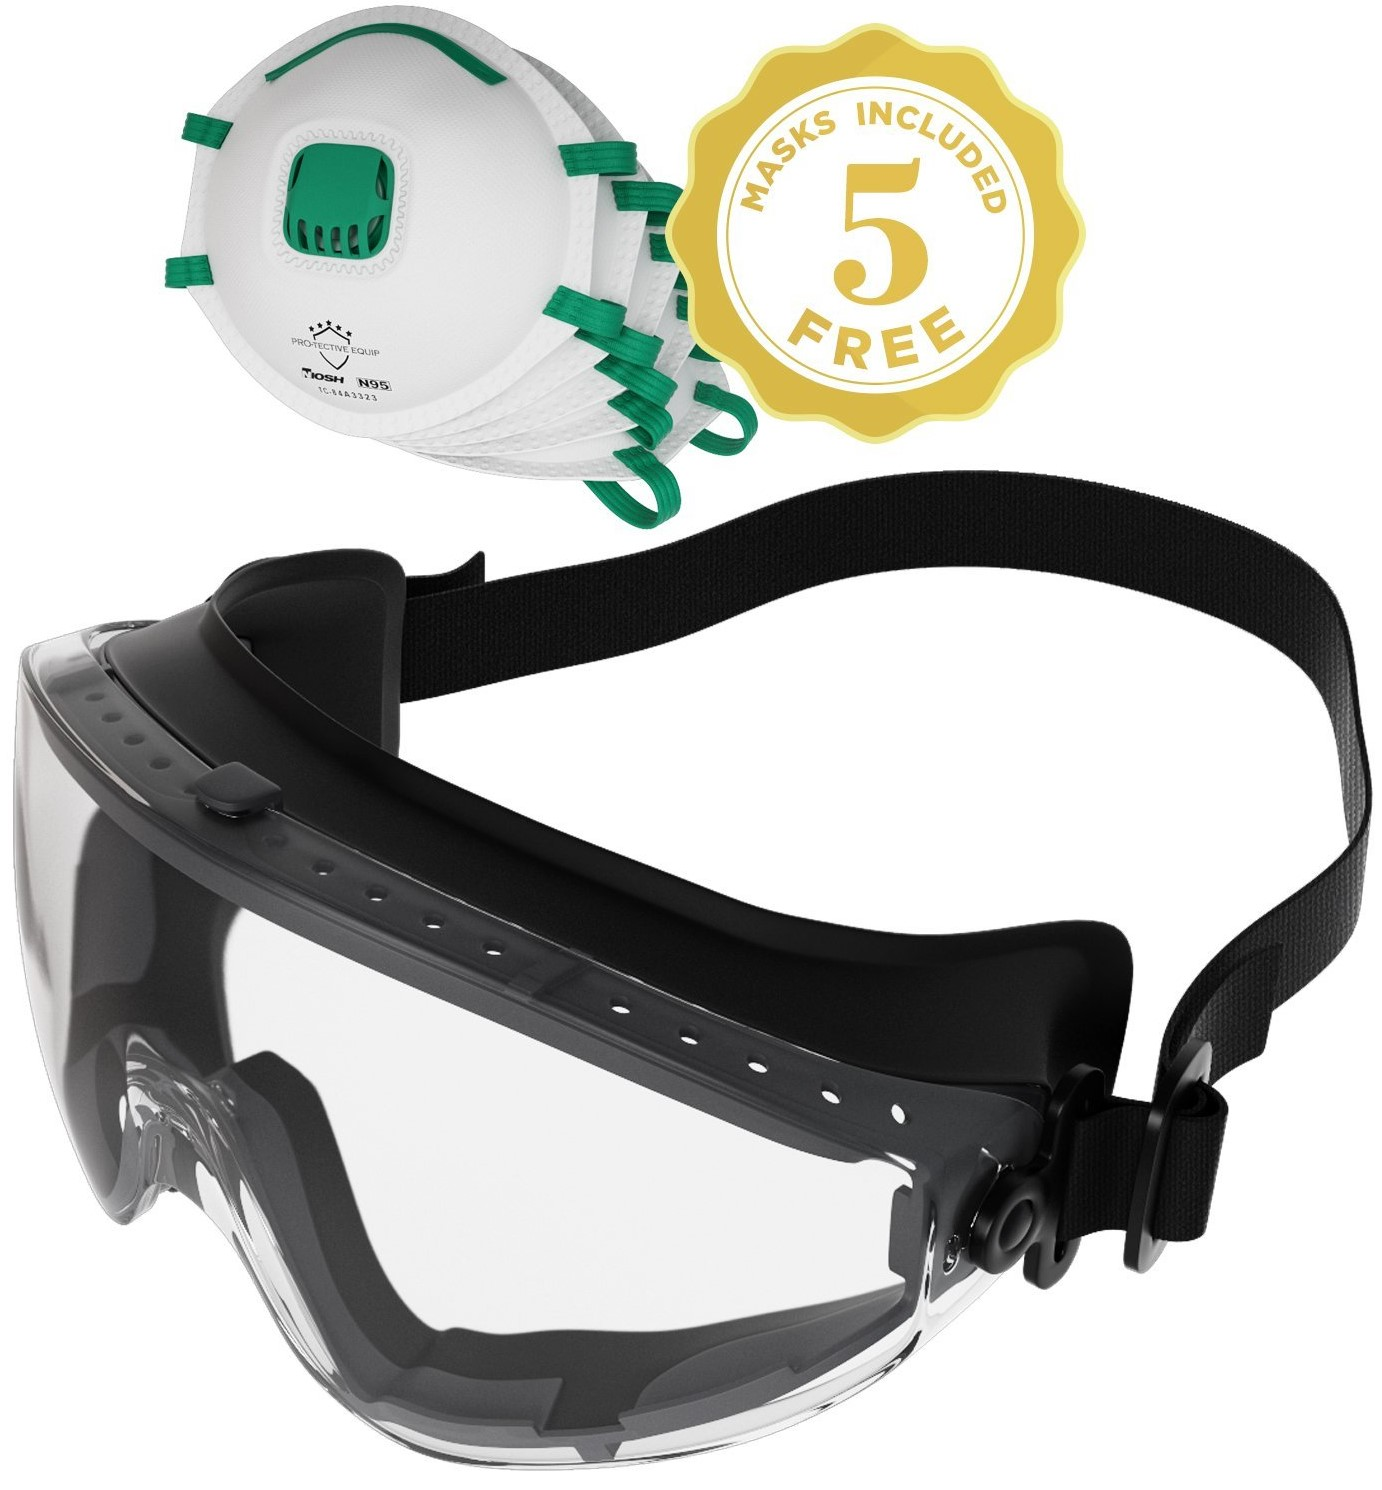 safety monogoggle fits over Rx glasses with 5 free respirator face masks